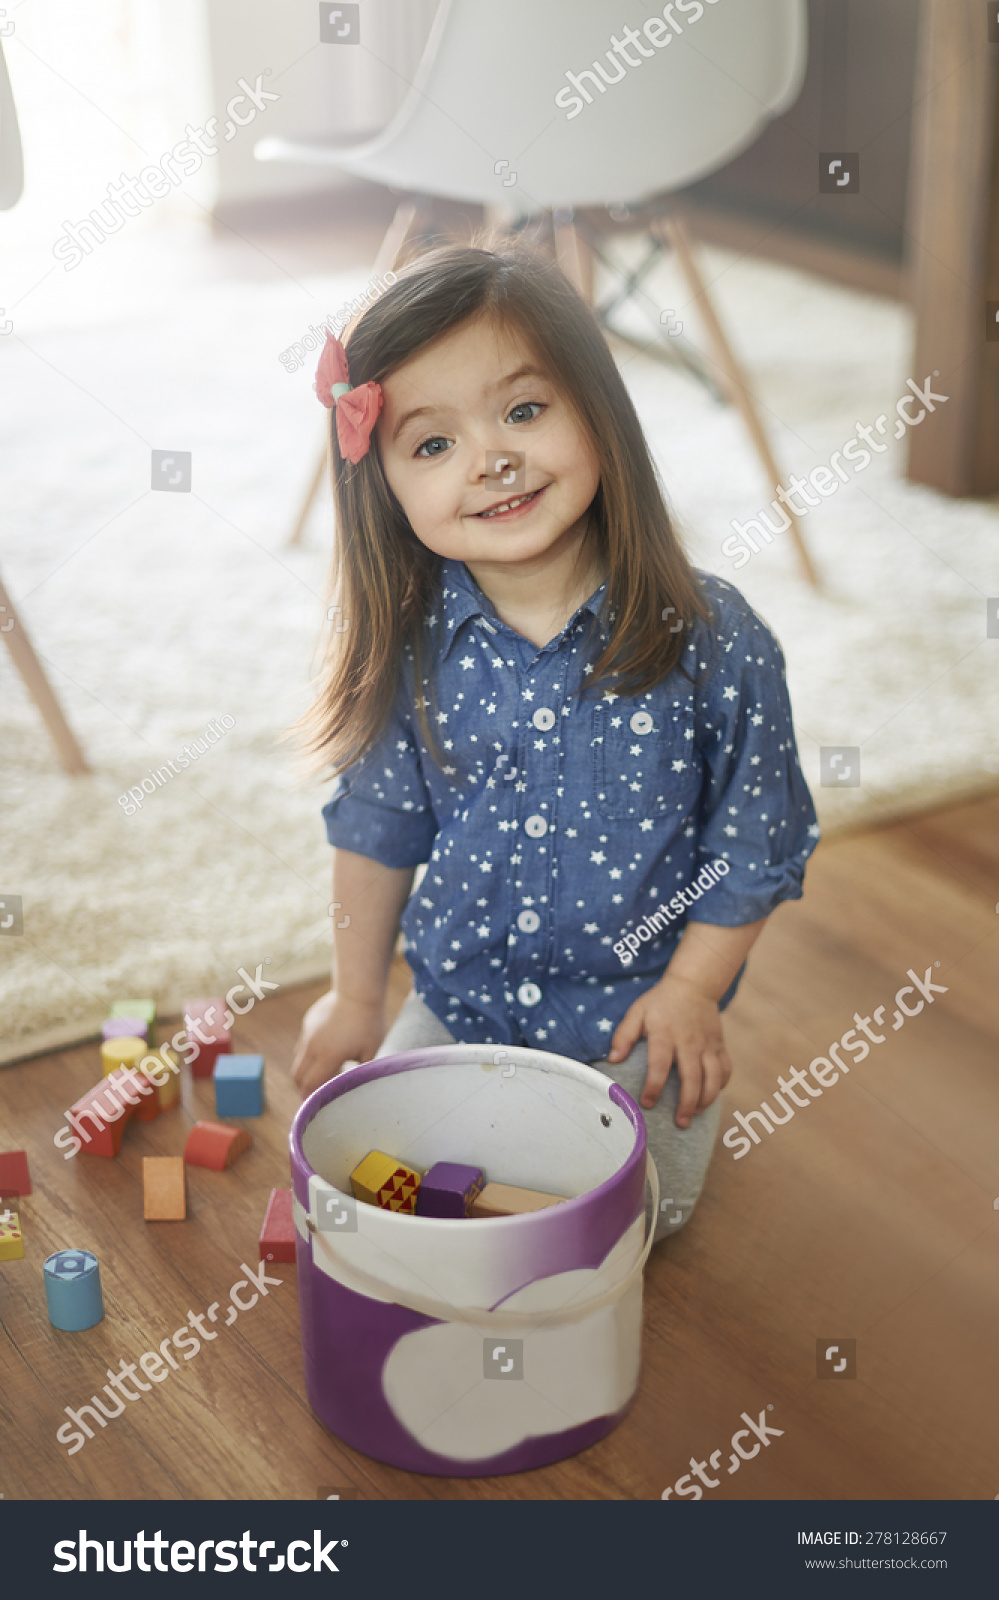 She Always Had Really Nice Makeup: She Always Cleans Up After The Playing Stock Photo